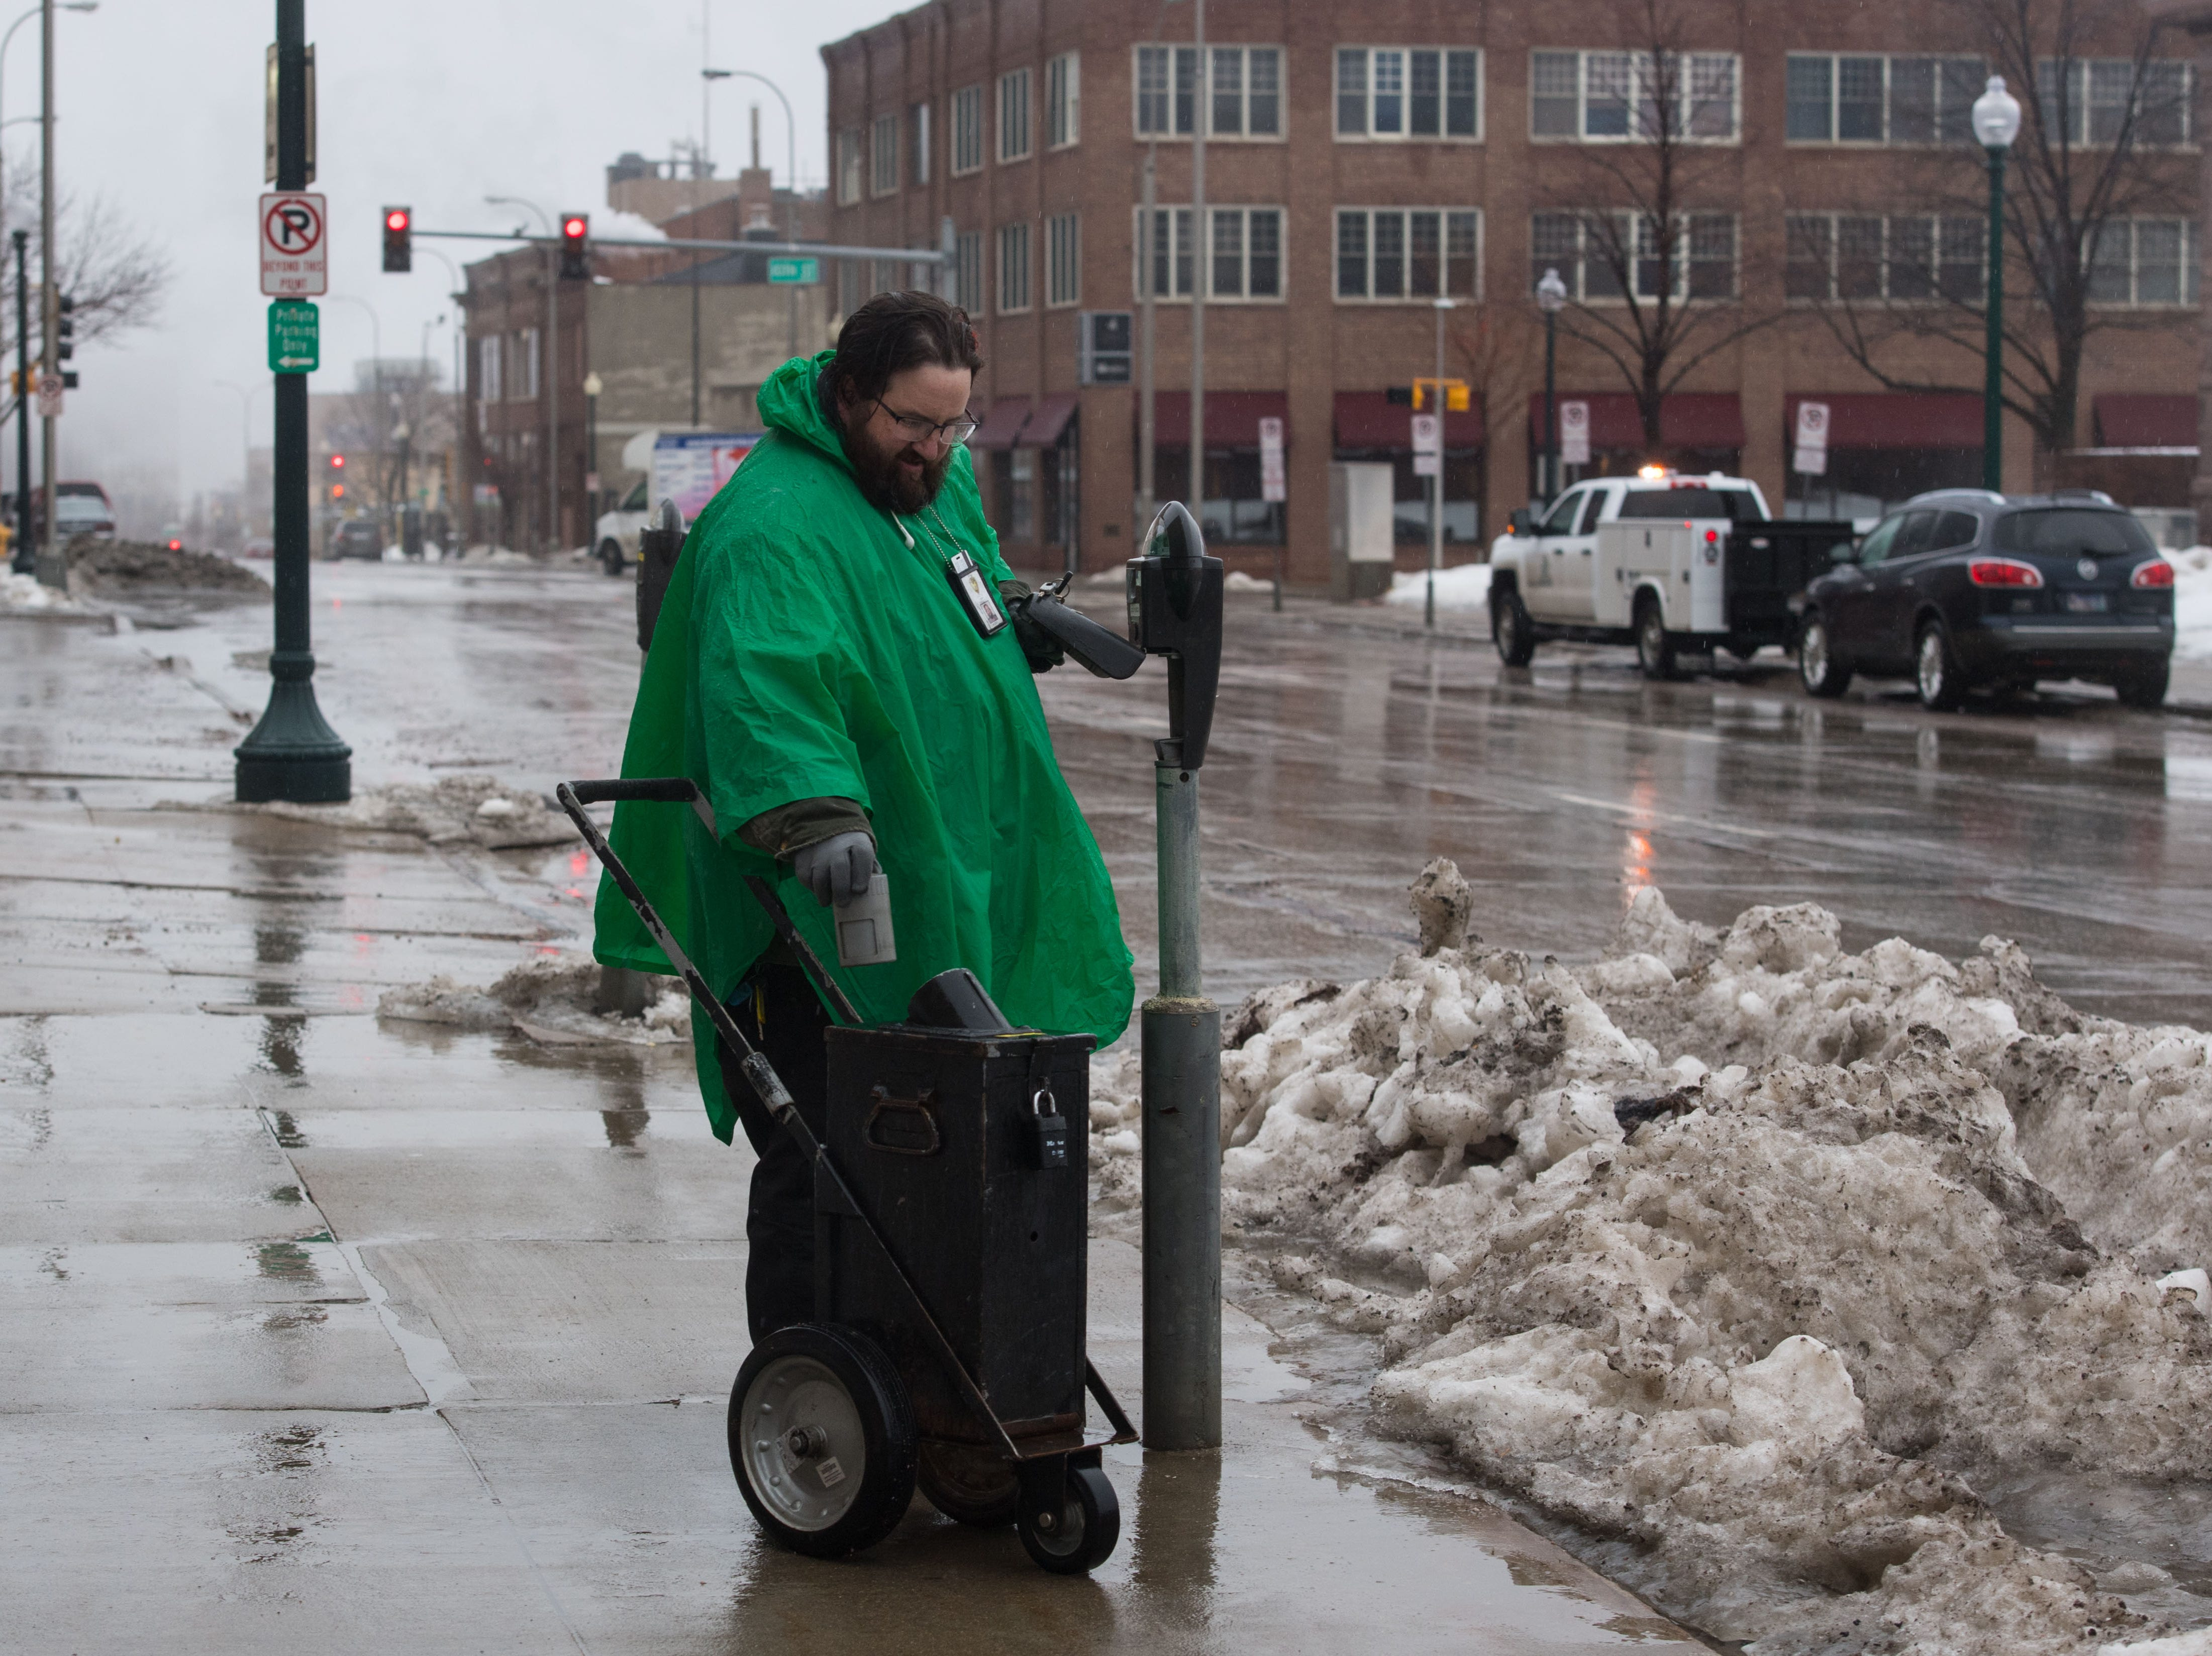 Toby Bartlett collects money from the meters in the rain in downtown Sioux Falls, S.D., Wednesday, March 13, 2019.